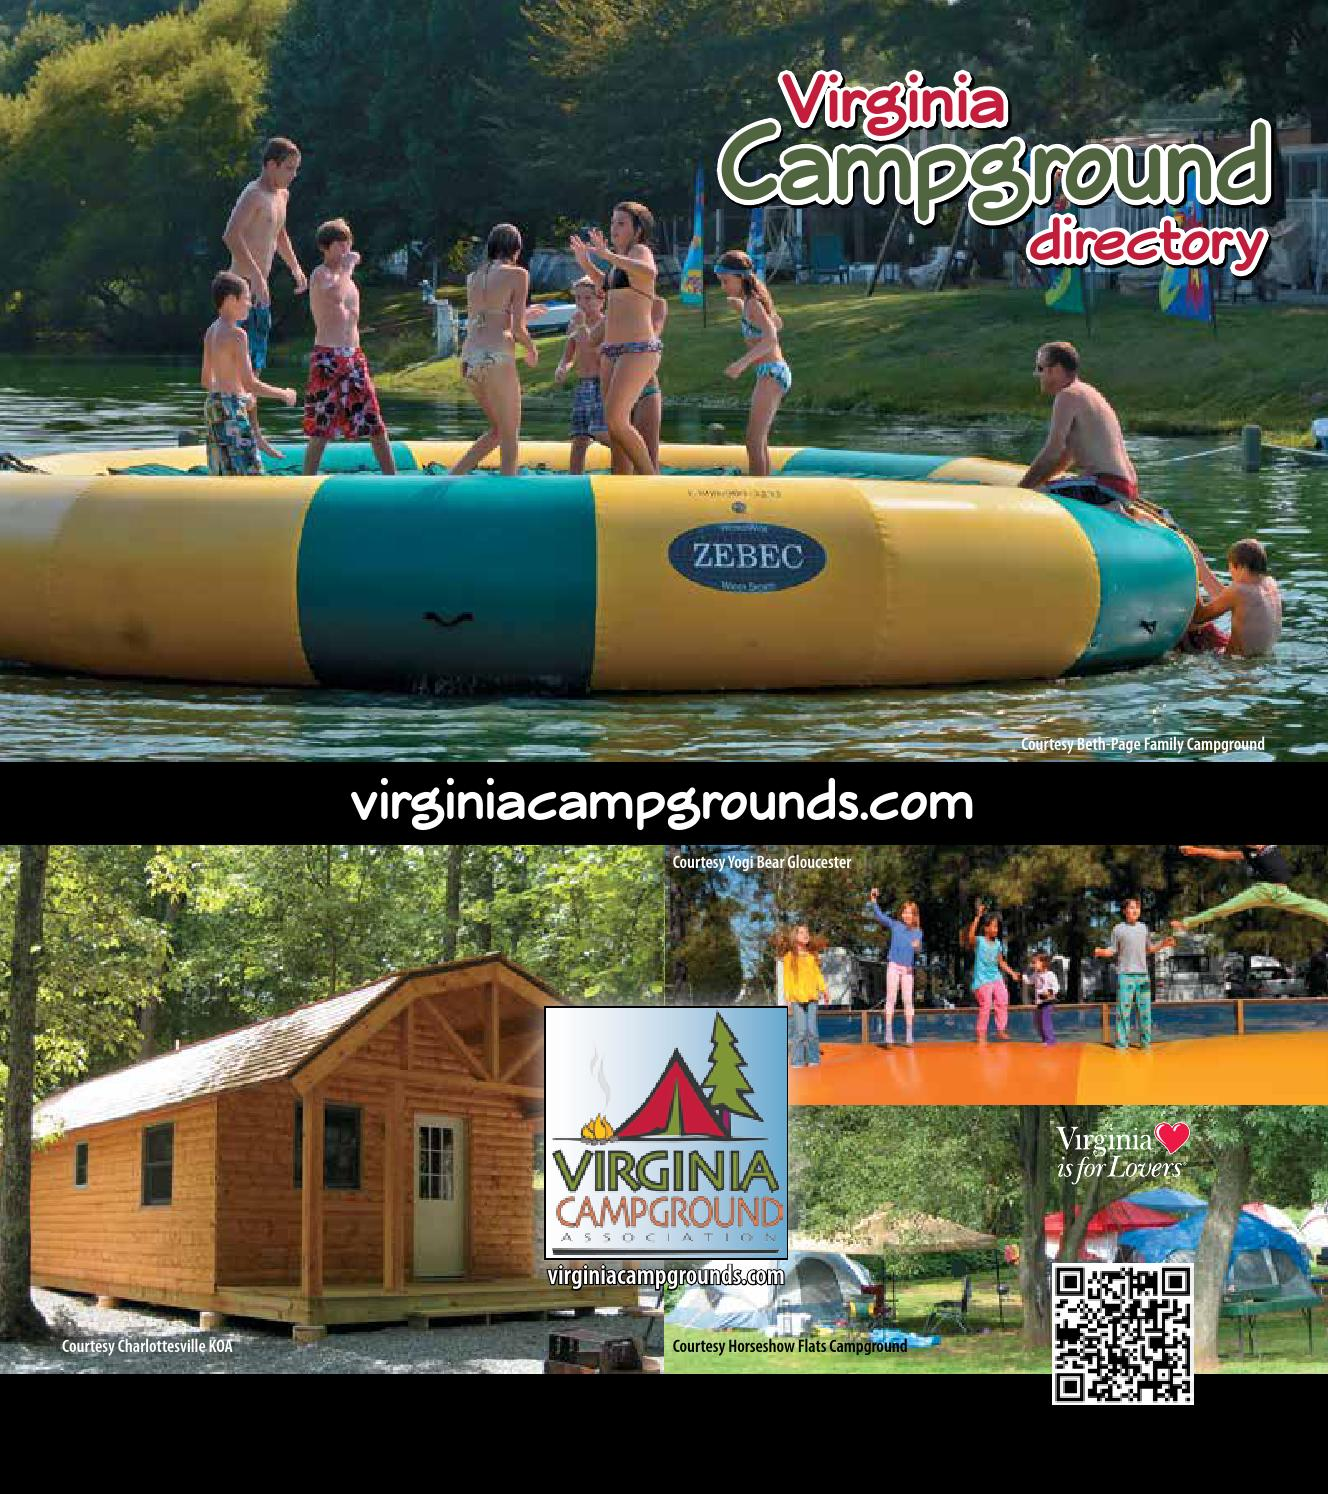 Virginia Campground Directory 2014 By Ags Texas